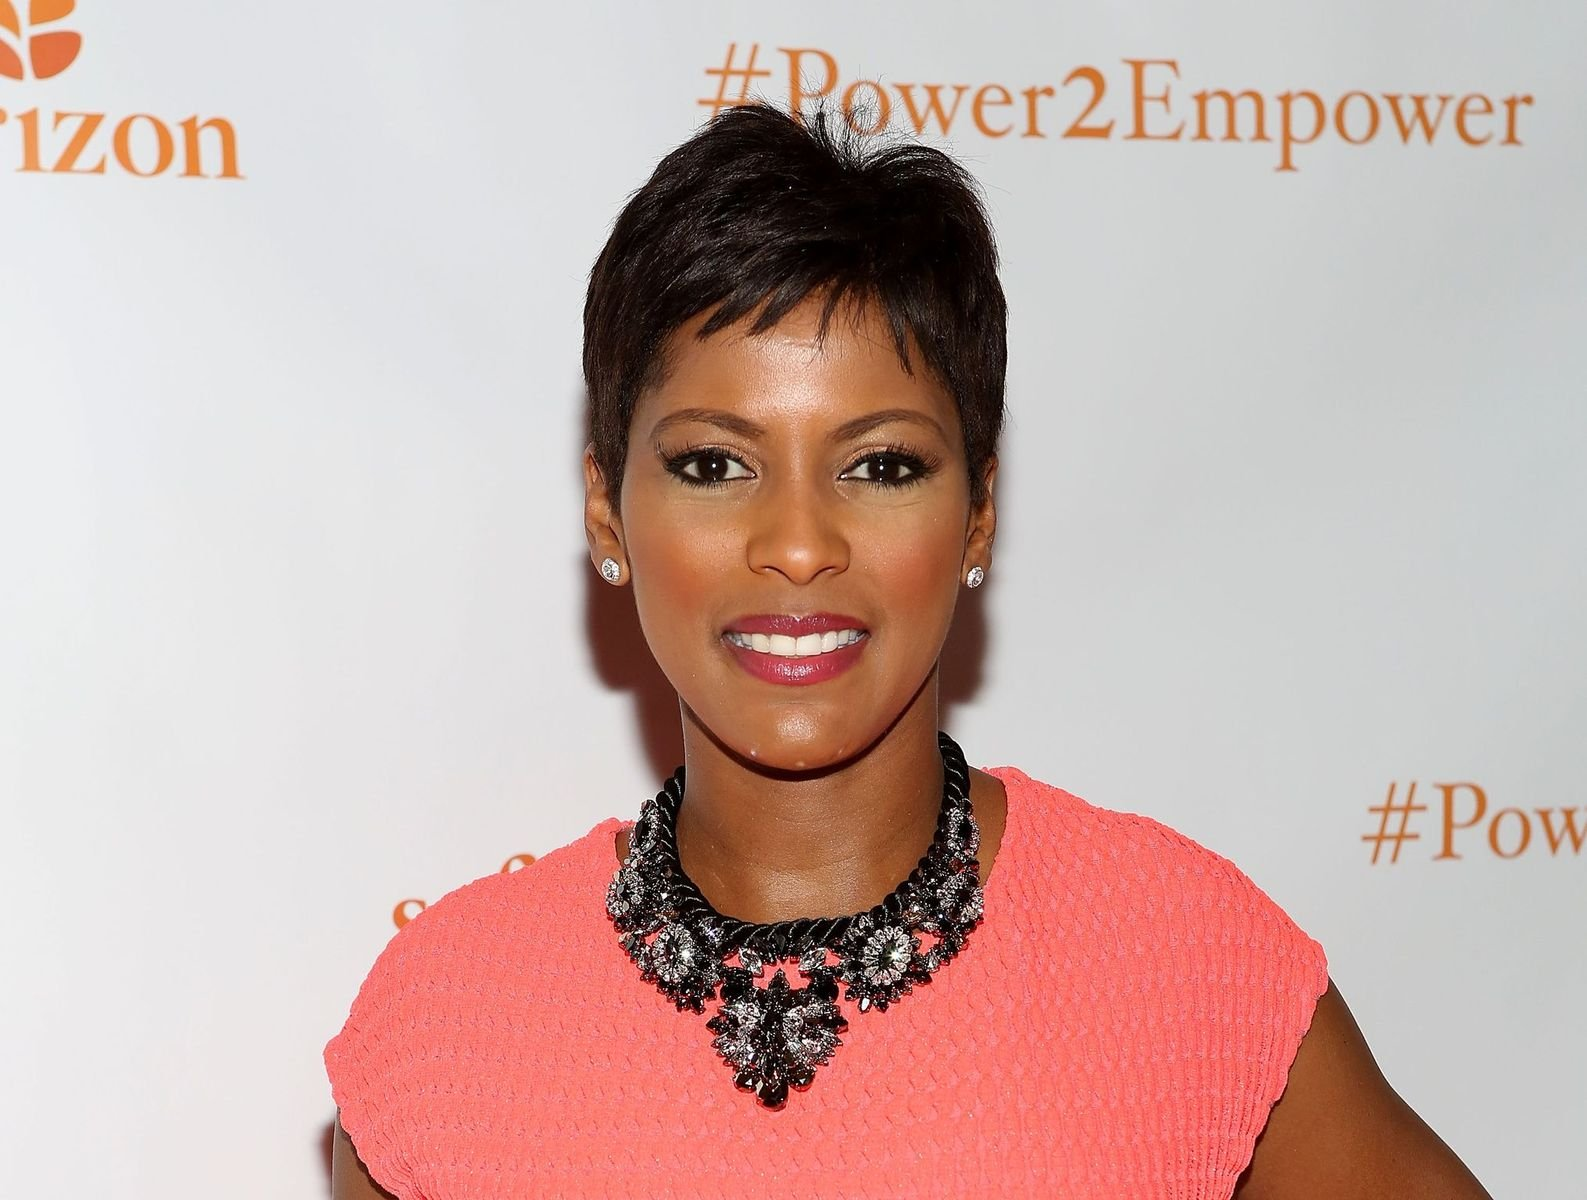 TV show host Tamron Hall attends the 2014 Champion Awards organized by Safe Horizons group at Chelsea Piers in New York City. | Photo: Getty Images